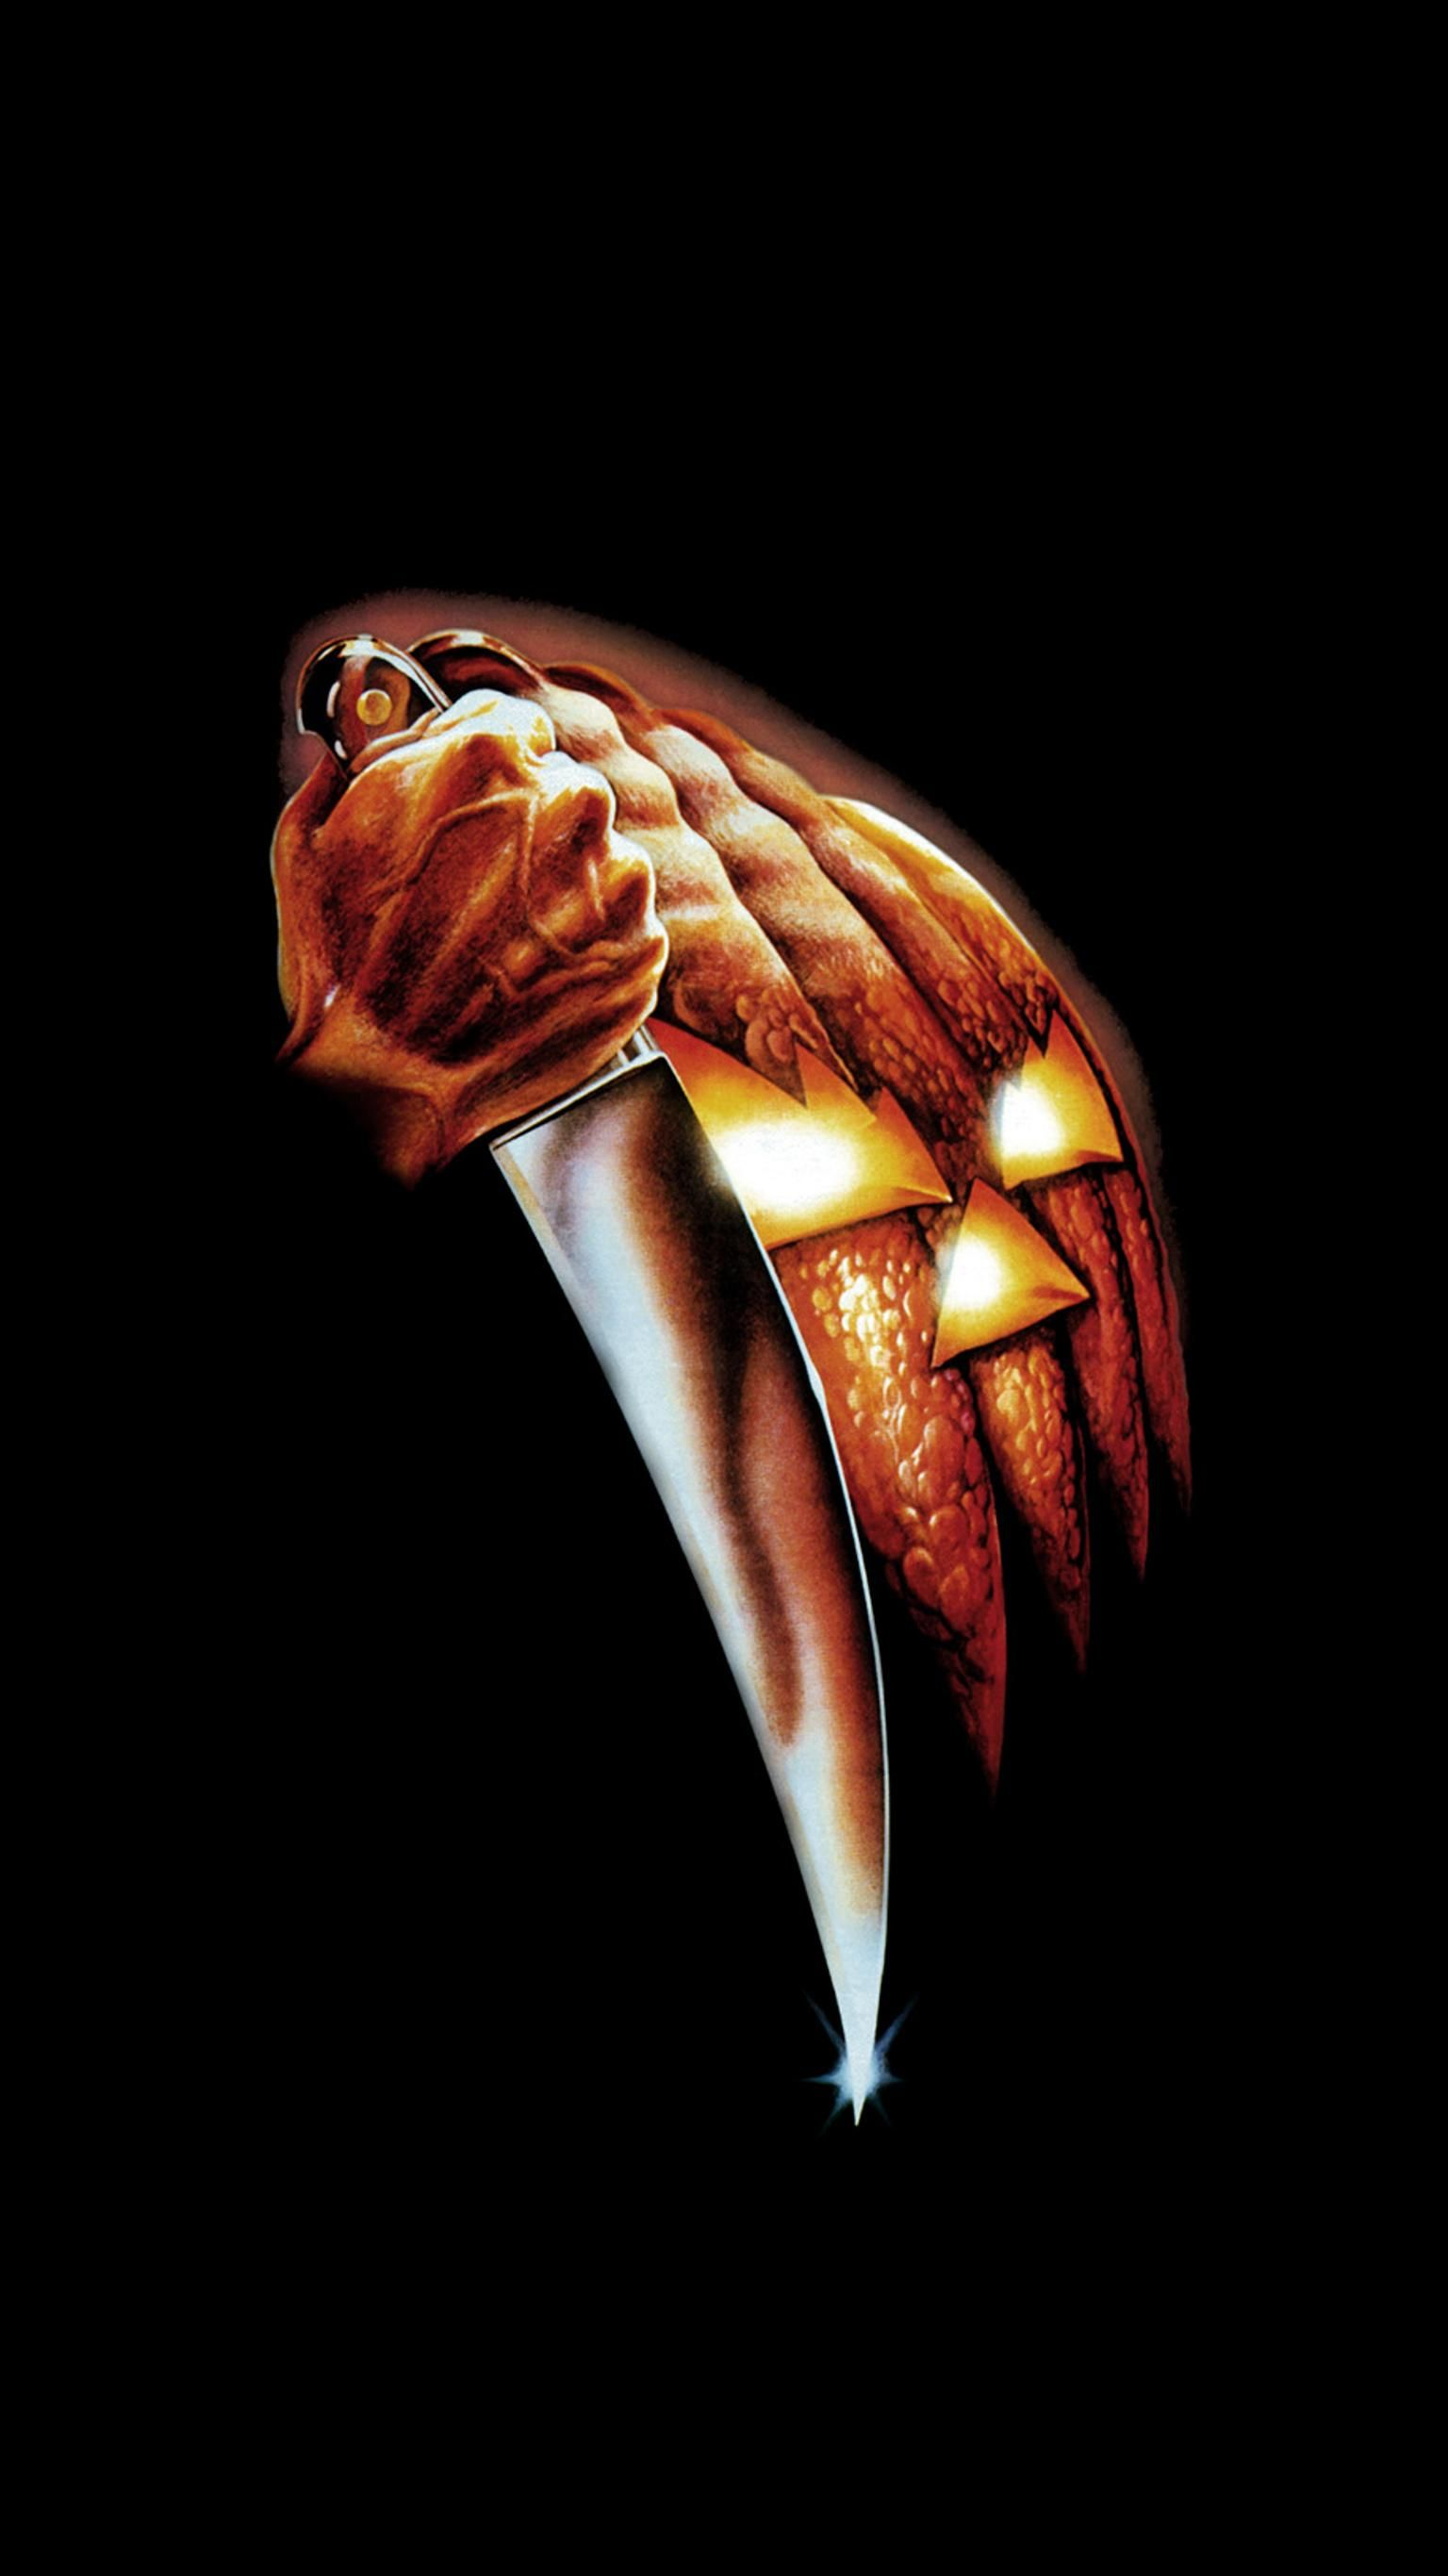 Halloween (1978) Phone Wallpaper Moviemania in 2020